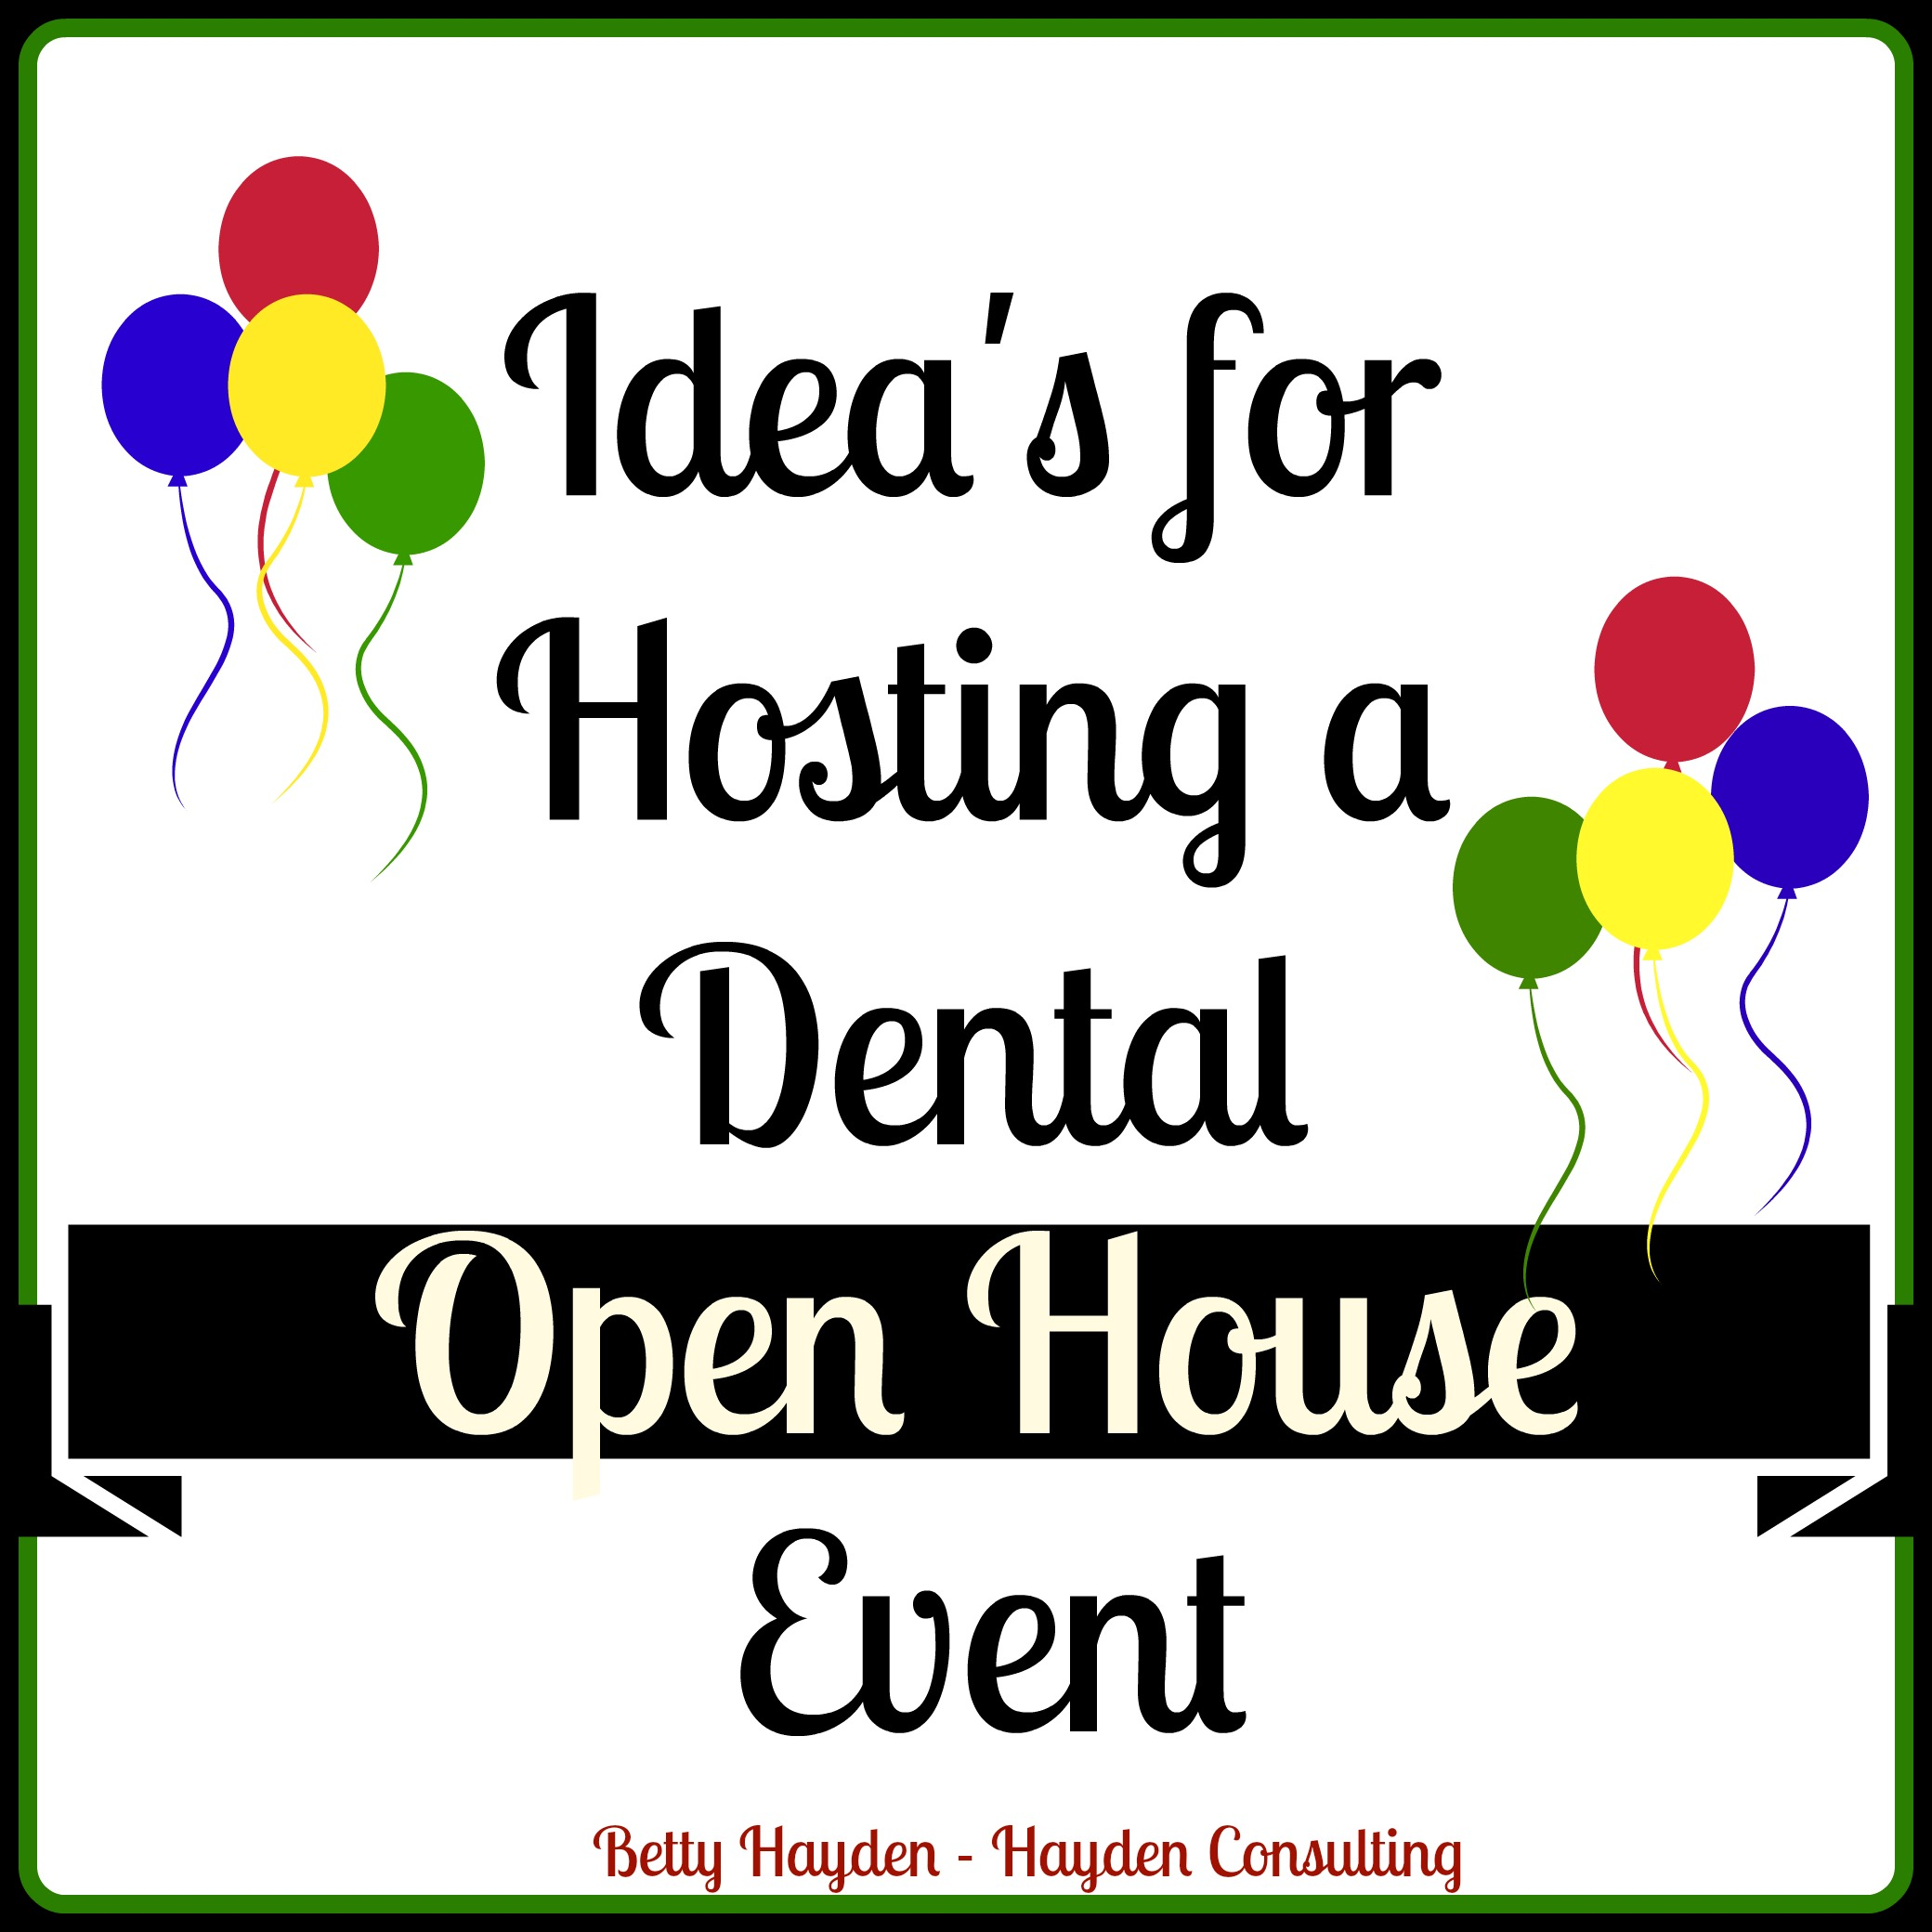 Dental office marketing ideas hayden consulting - Open house decorations ...